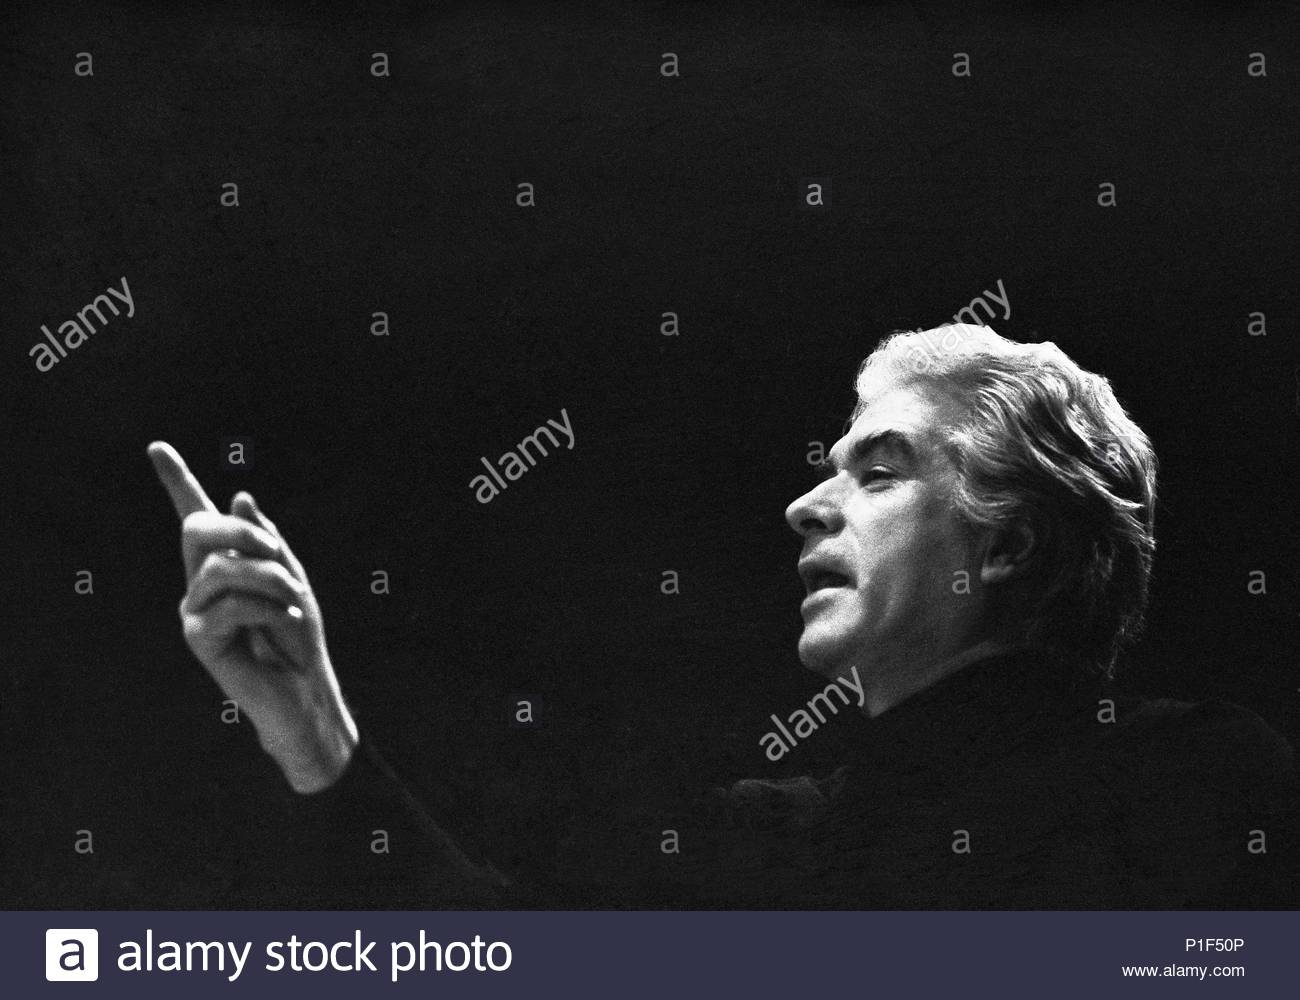 """The Paris Opera in the Palais Garnier reopened in 1973 under its new director Rolf Liebermann. Giorgio Strehler directed the premiere of Mozart's """" Marriage of Figaro"""". Paris Opera,1973. Location: Operahouse Palais Garnier, Paris, France. - Stock Image"""